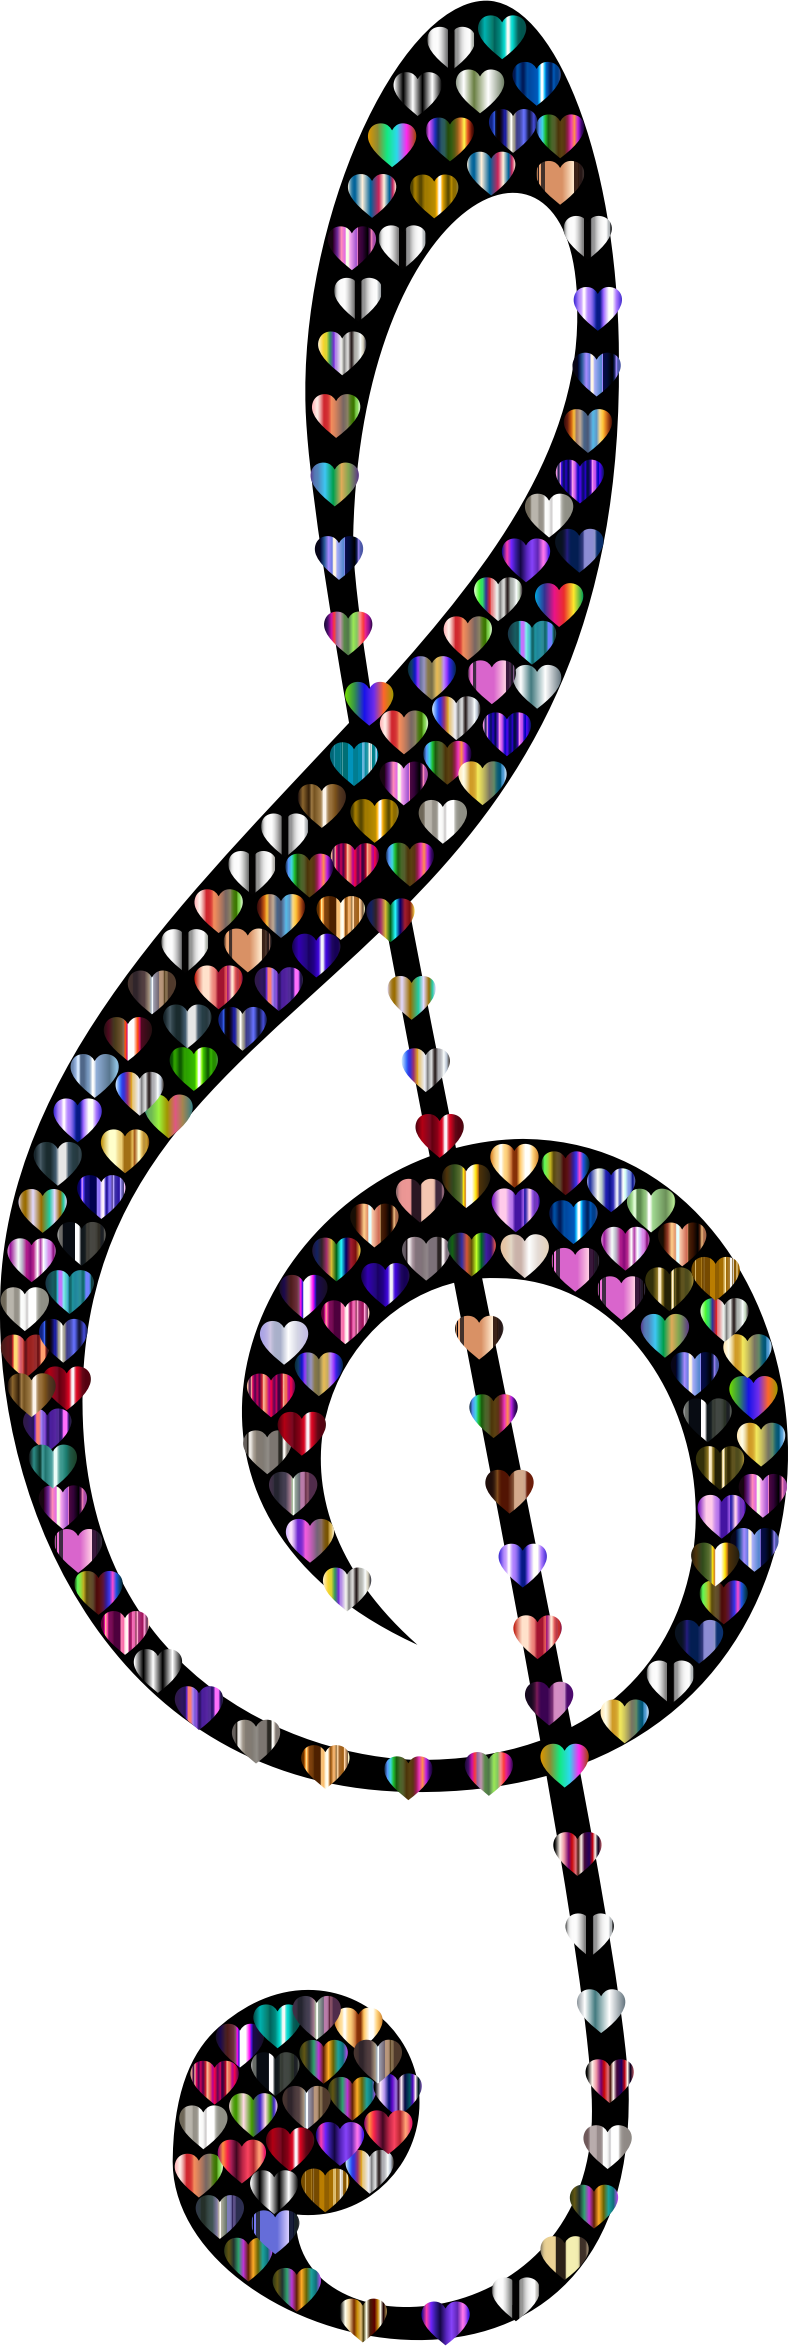 Prismatic Clef Hearts 6 Variation 2 by GDJ